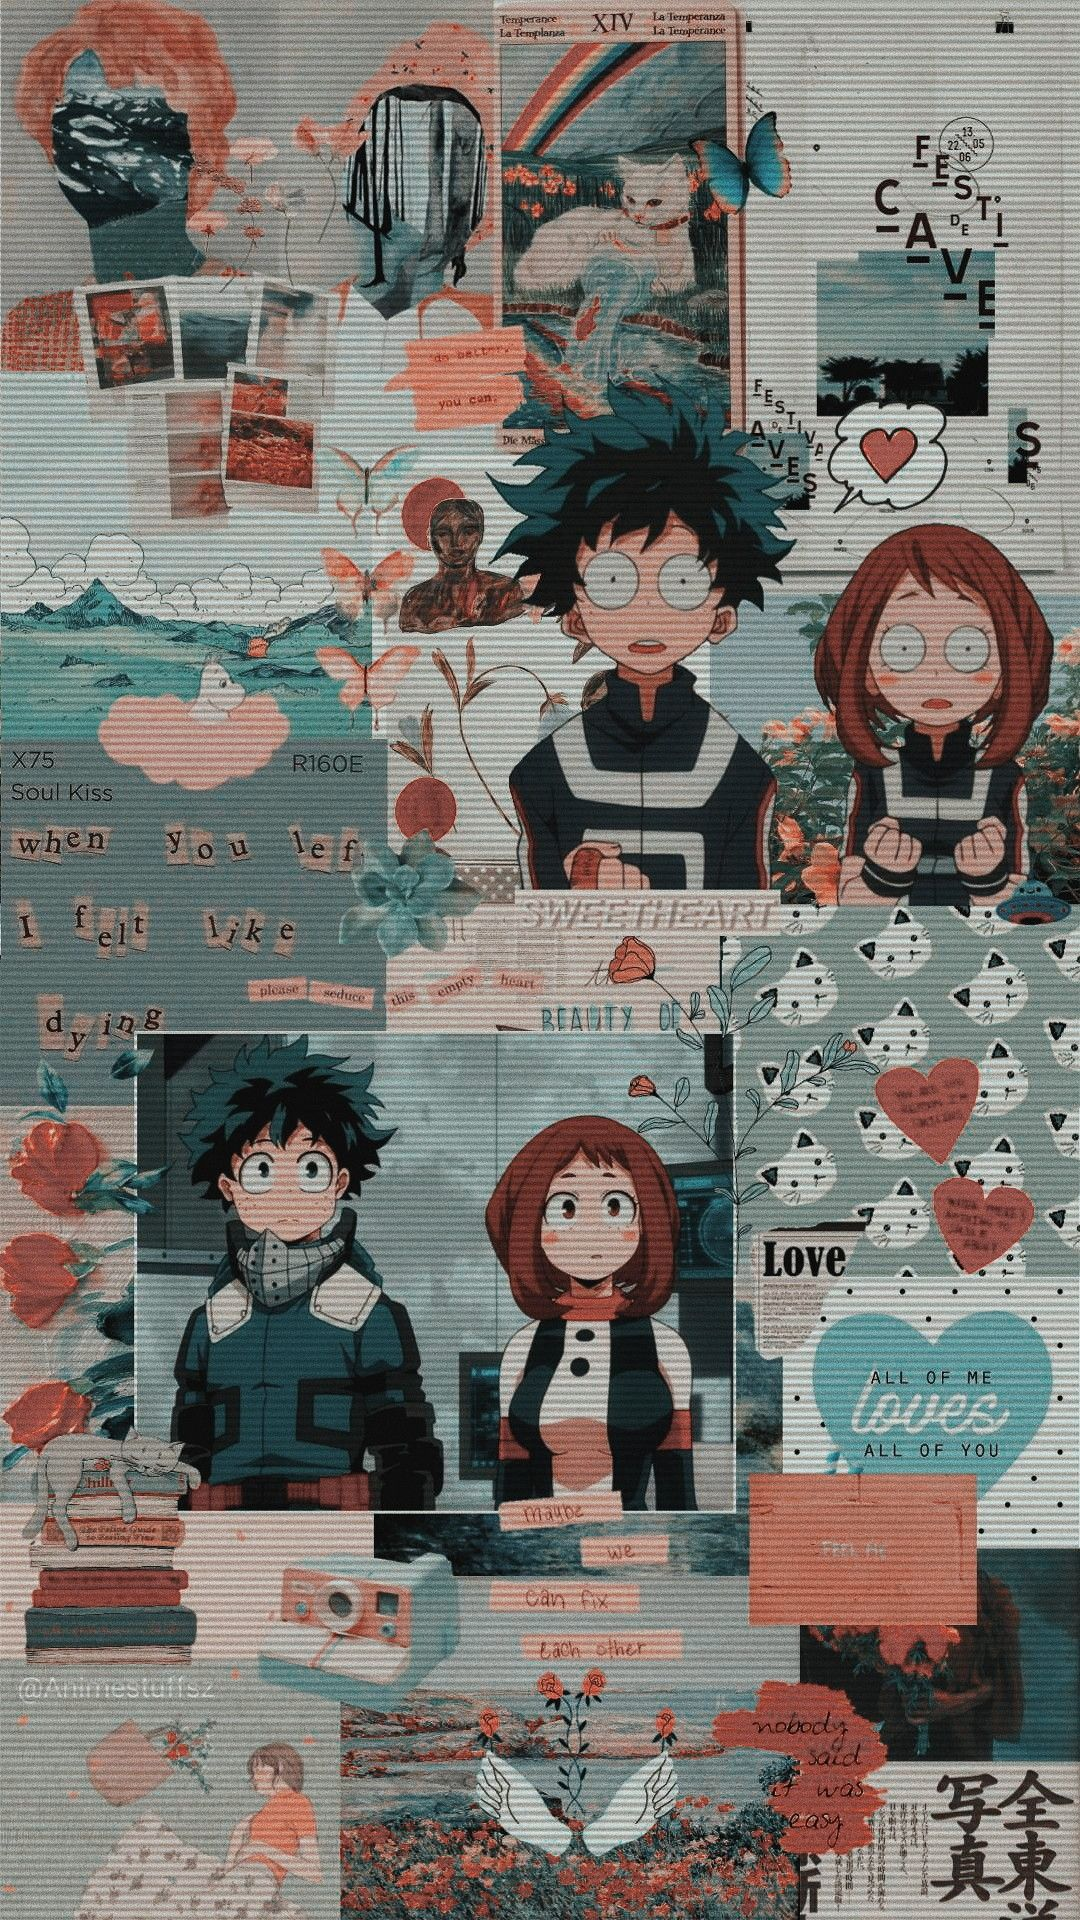 Mha Aesthetic Wallpaper : aesthetic, wallpaper, Aesthetic, Academia, Wallpapers, KoLPaPer, Awesome